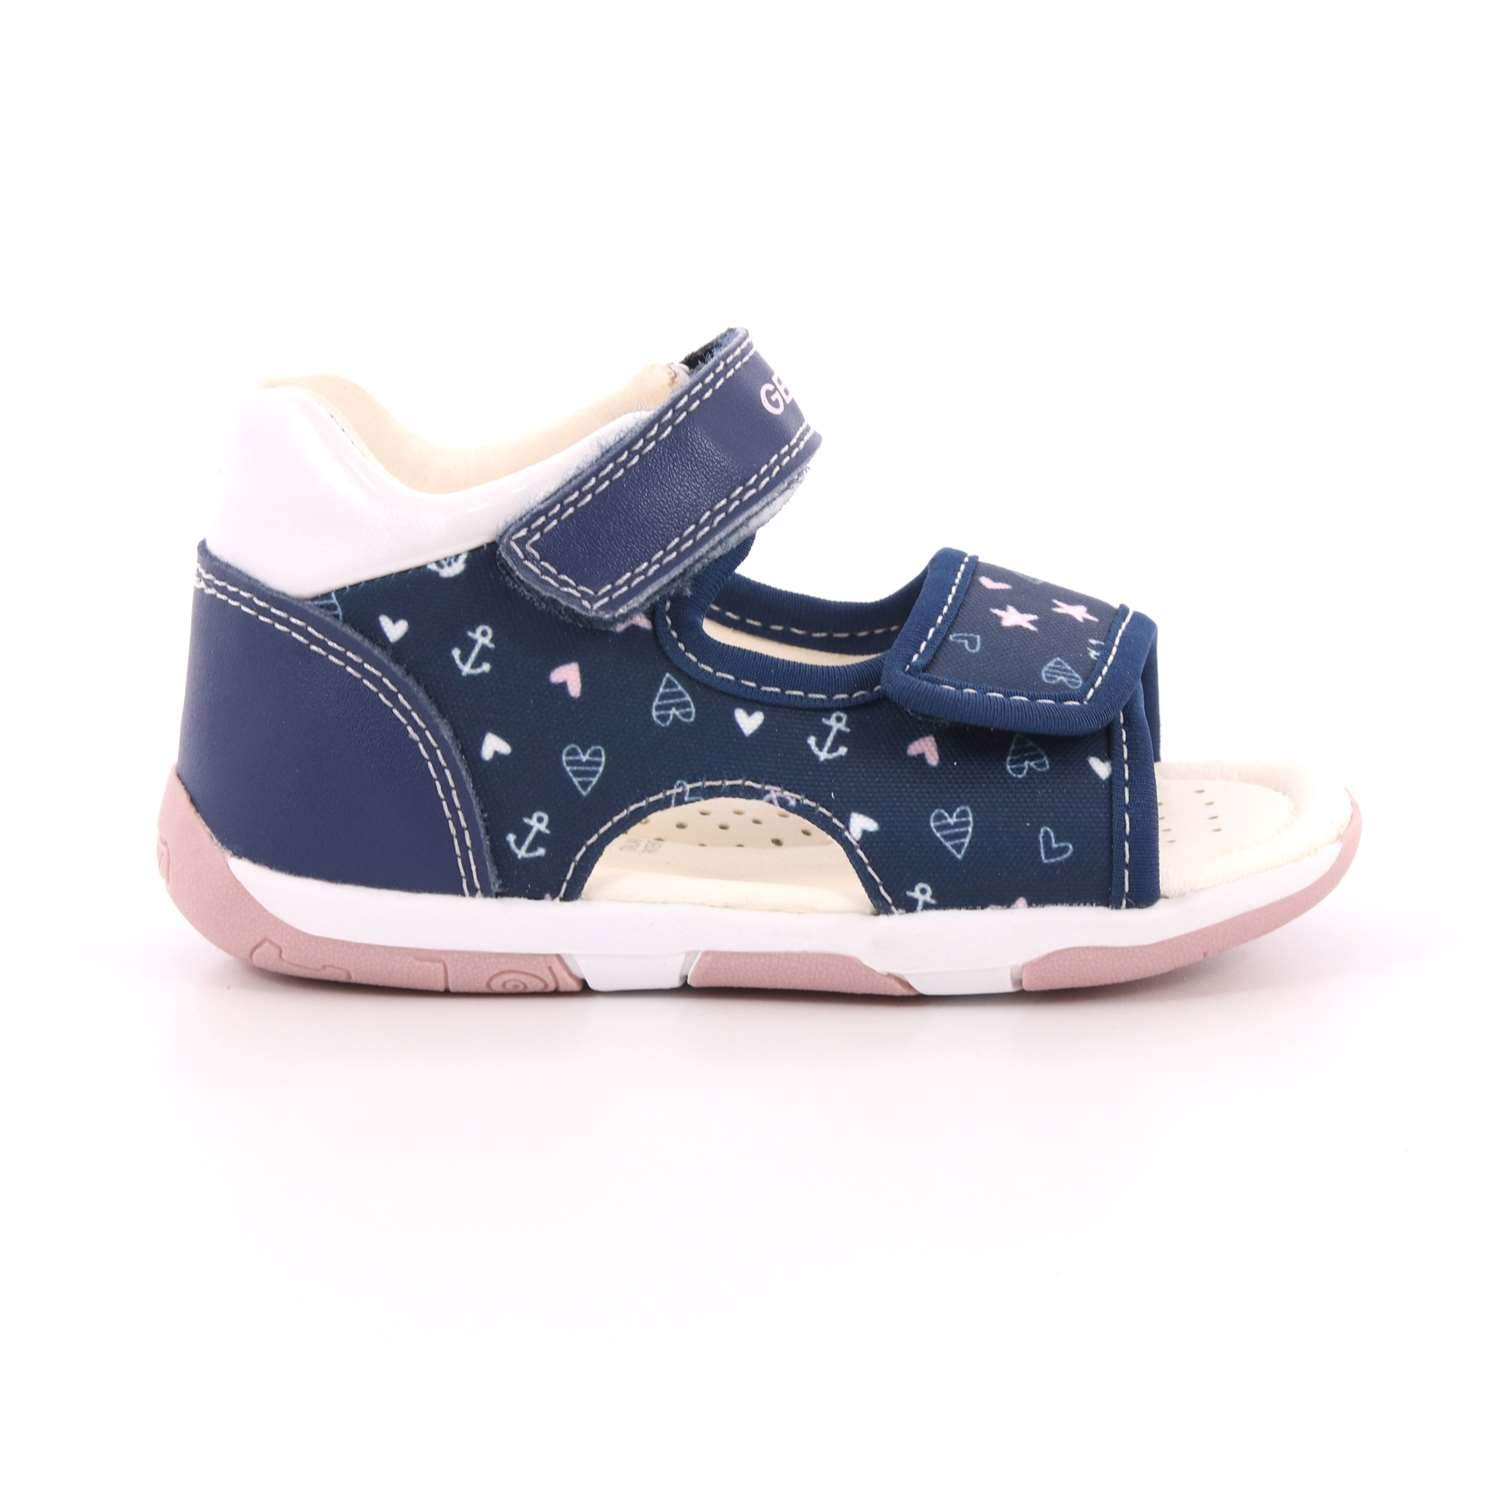 Geox Baby Girl's Tapuz A First Walker Shoes: Amazon.ca